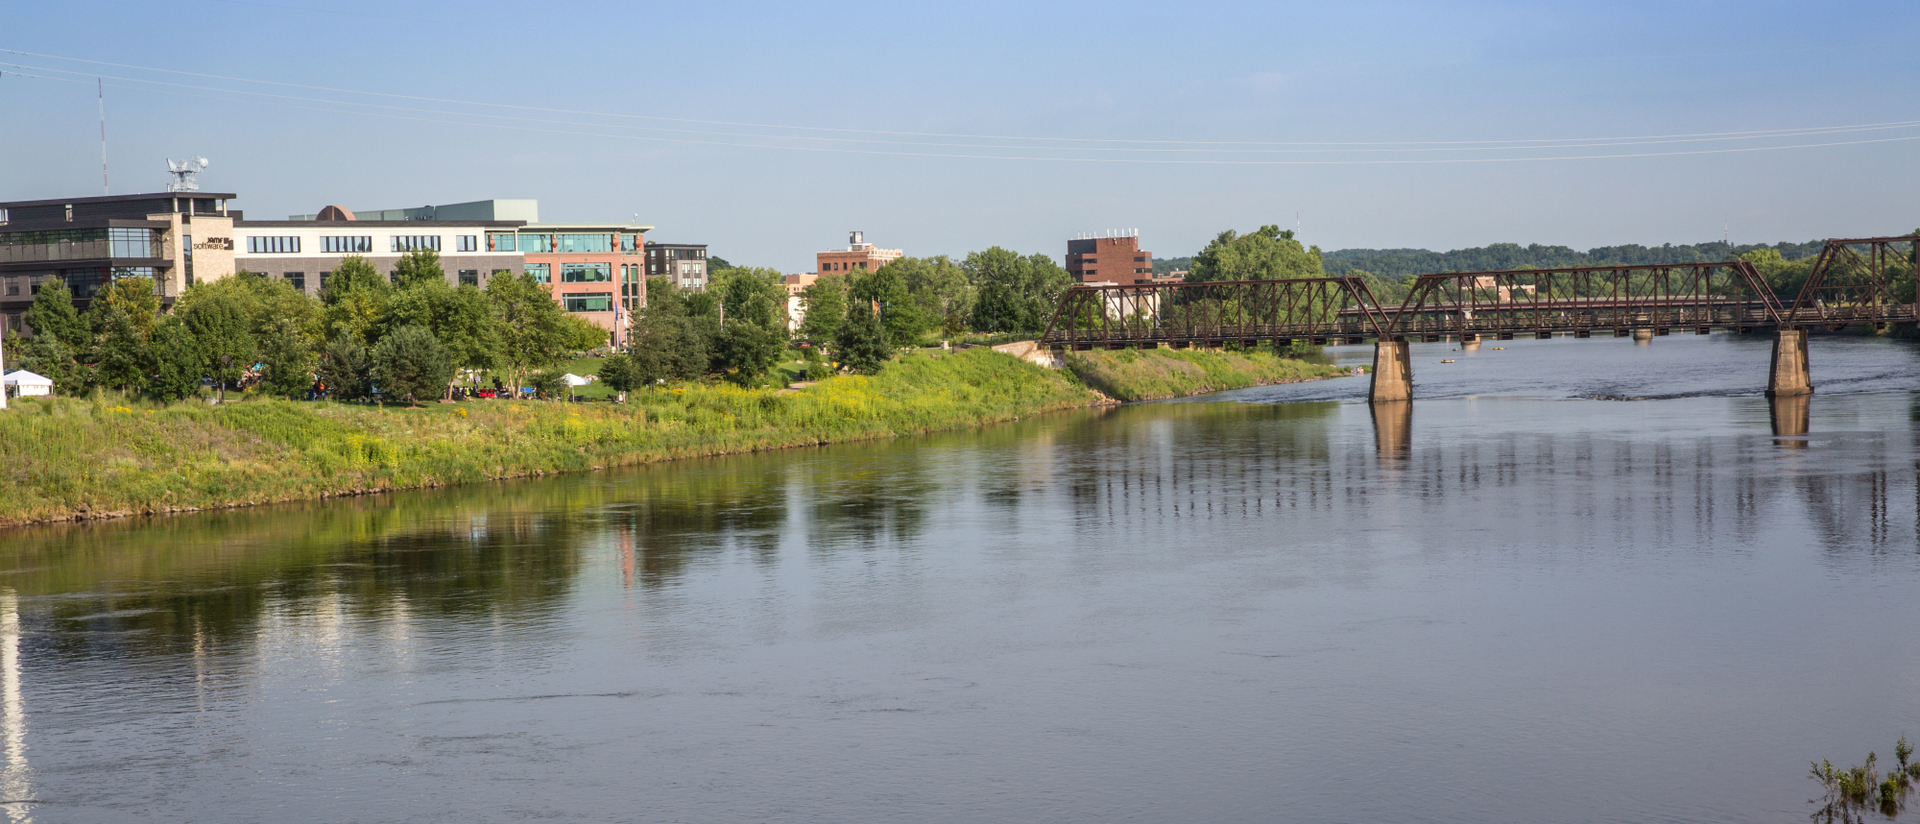 Phoenix Park and the footbridge over the Chippewa River.